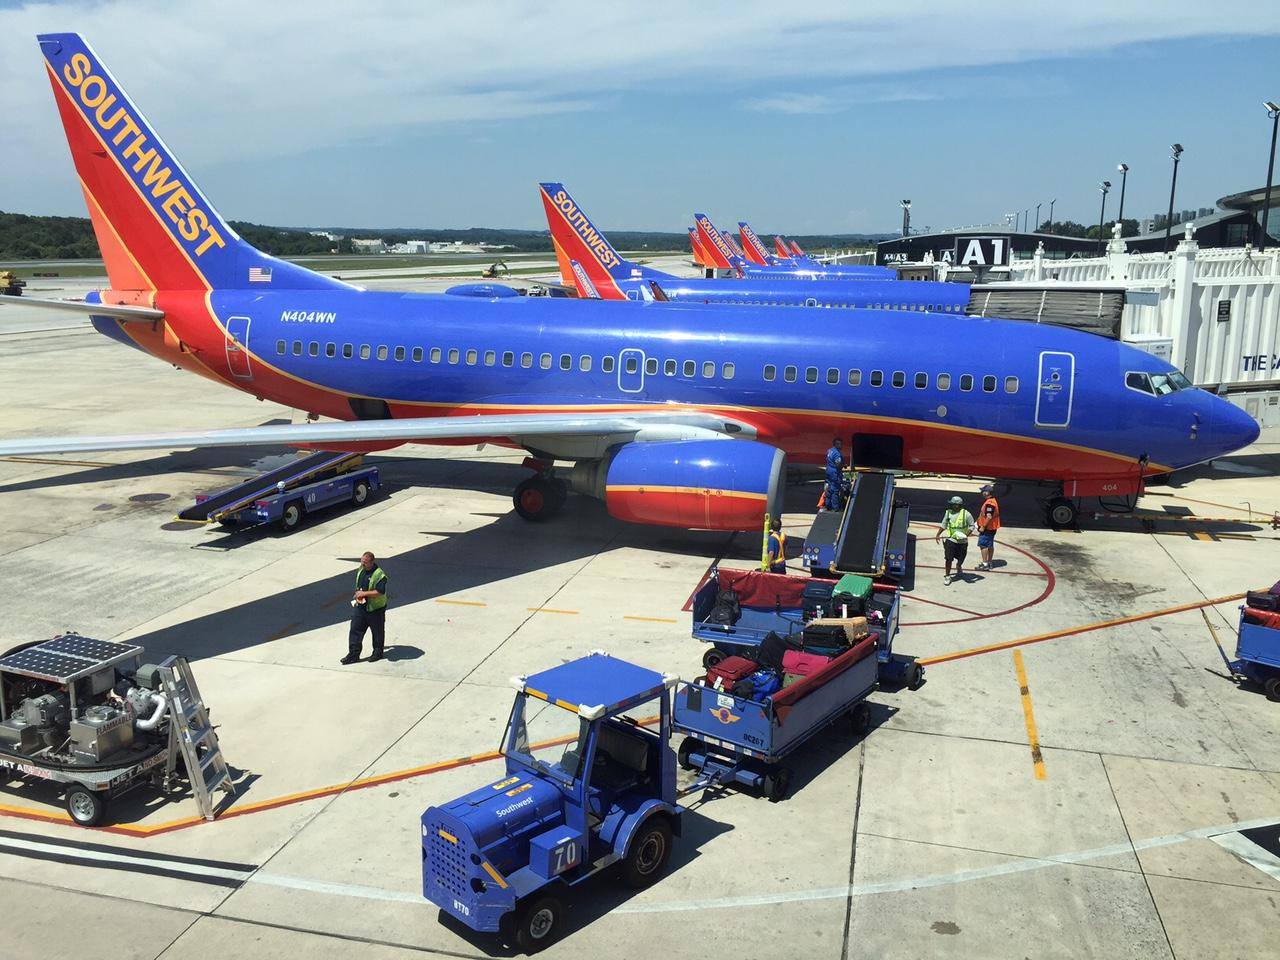 Driver transported after vehicle crashes into Southwest plane at BWI airport